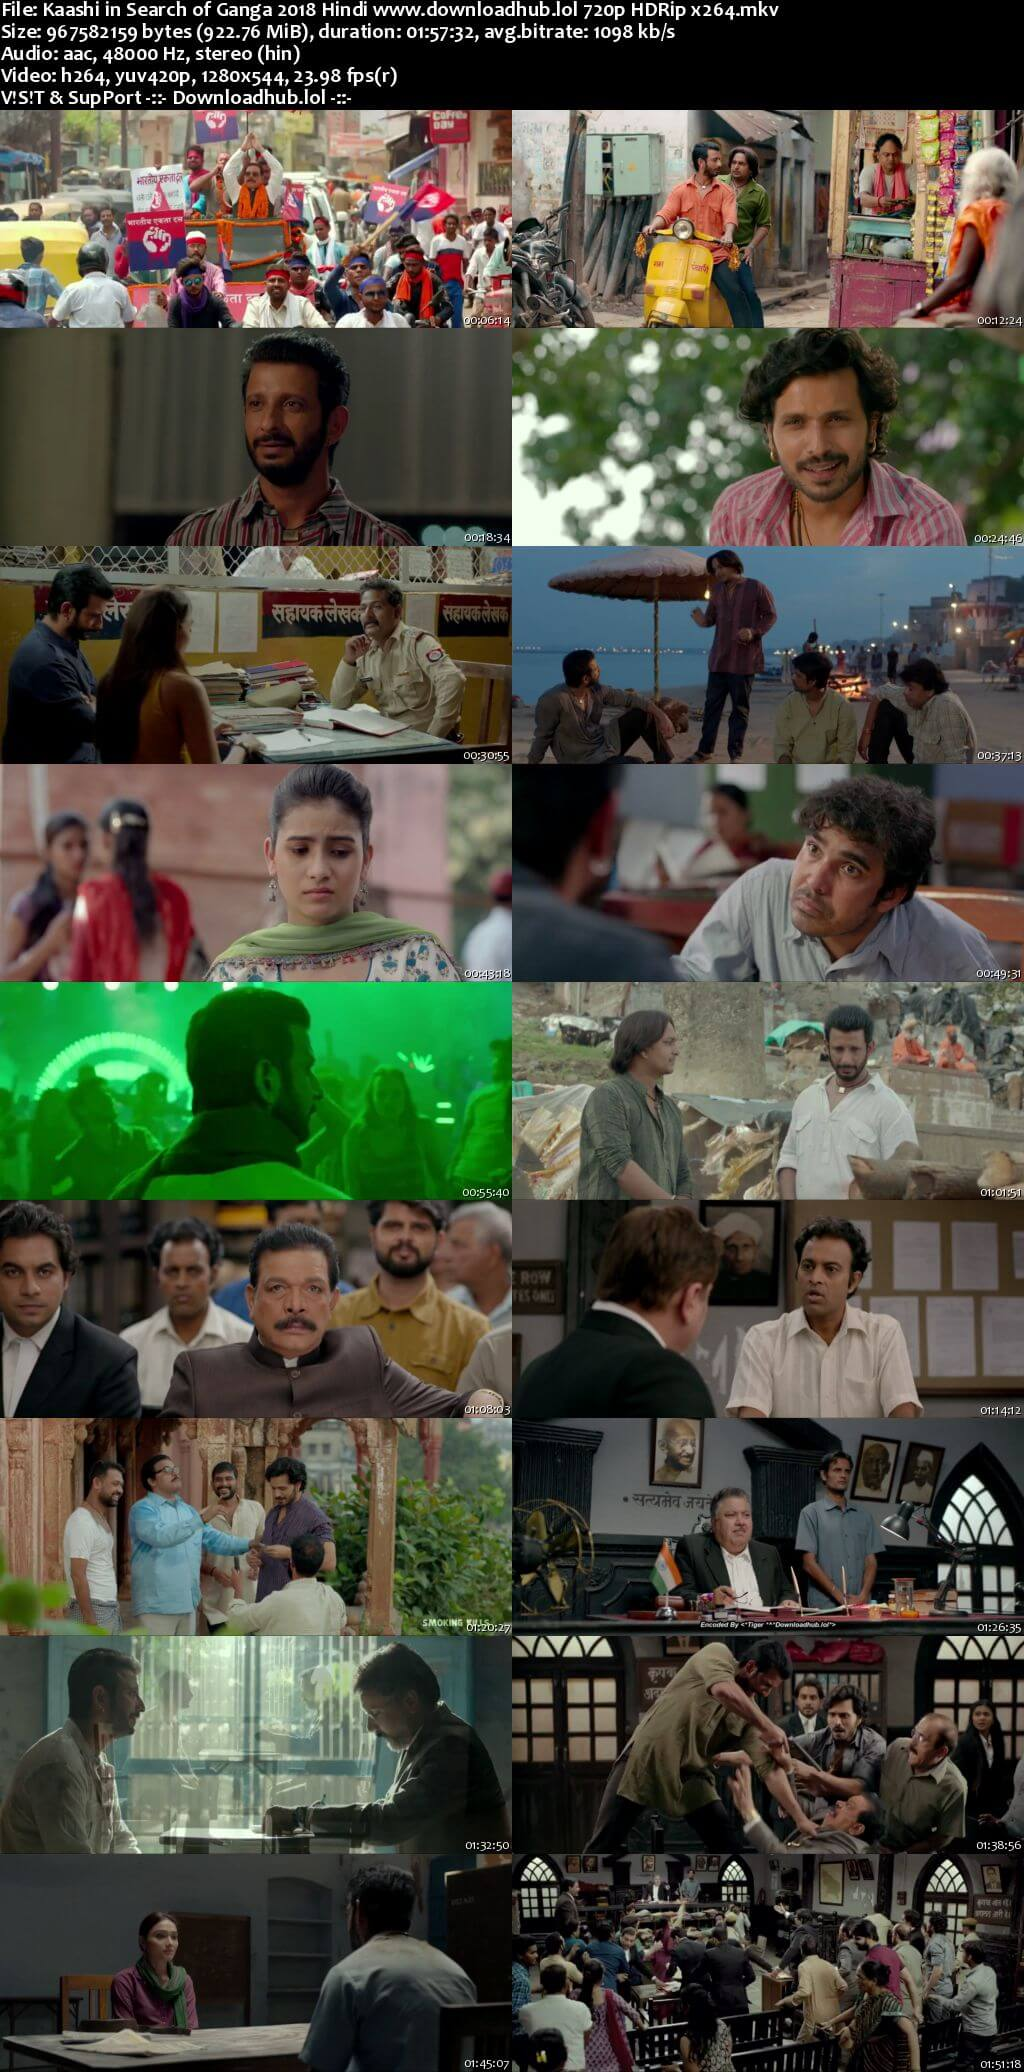 Kaashi in Search of Ganga 2018 Hindi 720p HDRip x264